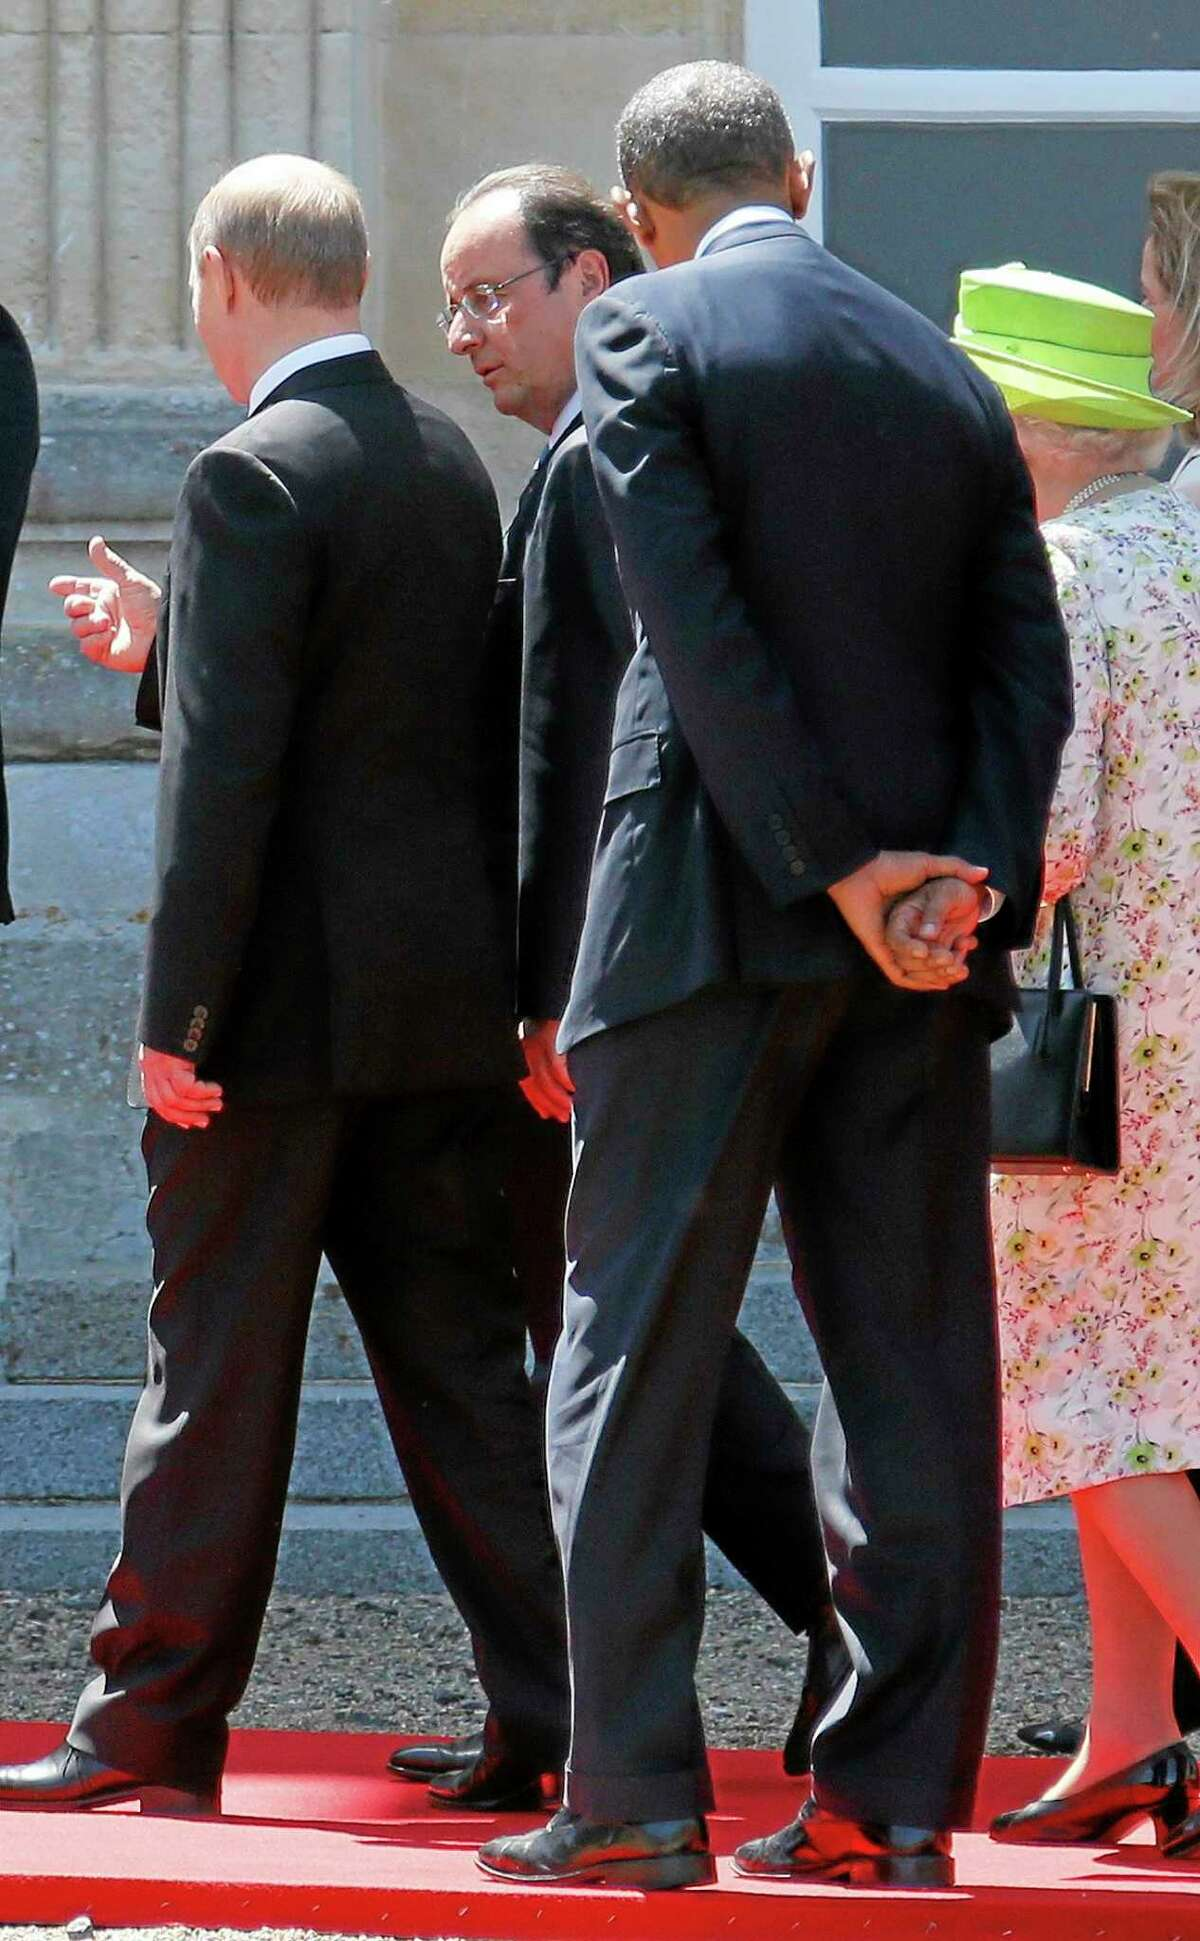 Russian President Vladimir Putin, left, talks to French President Francois Hollande, 2nd left, as they walk next to U.S. President Barack Obama, 2nd right and Britain's Queen Elizabeth after posing for a group photo for the 70th anniversary of the D-Day landings at Benouville castle, in Normandy, France, Friday, June 6, 2014. World leaders and veterans paid tribute on the 70th anniversary of the World War Two D-Day landings to soldiers who fell in the liberation of Europe from Nazi German rule, as host France sought to use the event to achieve a thaw in the Ukraine crisis. (Regis Duvignau, pool)